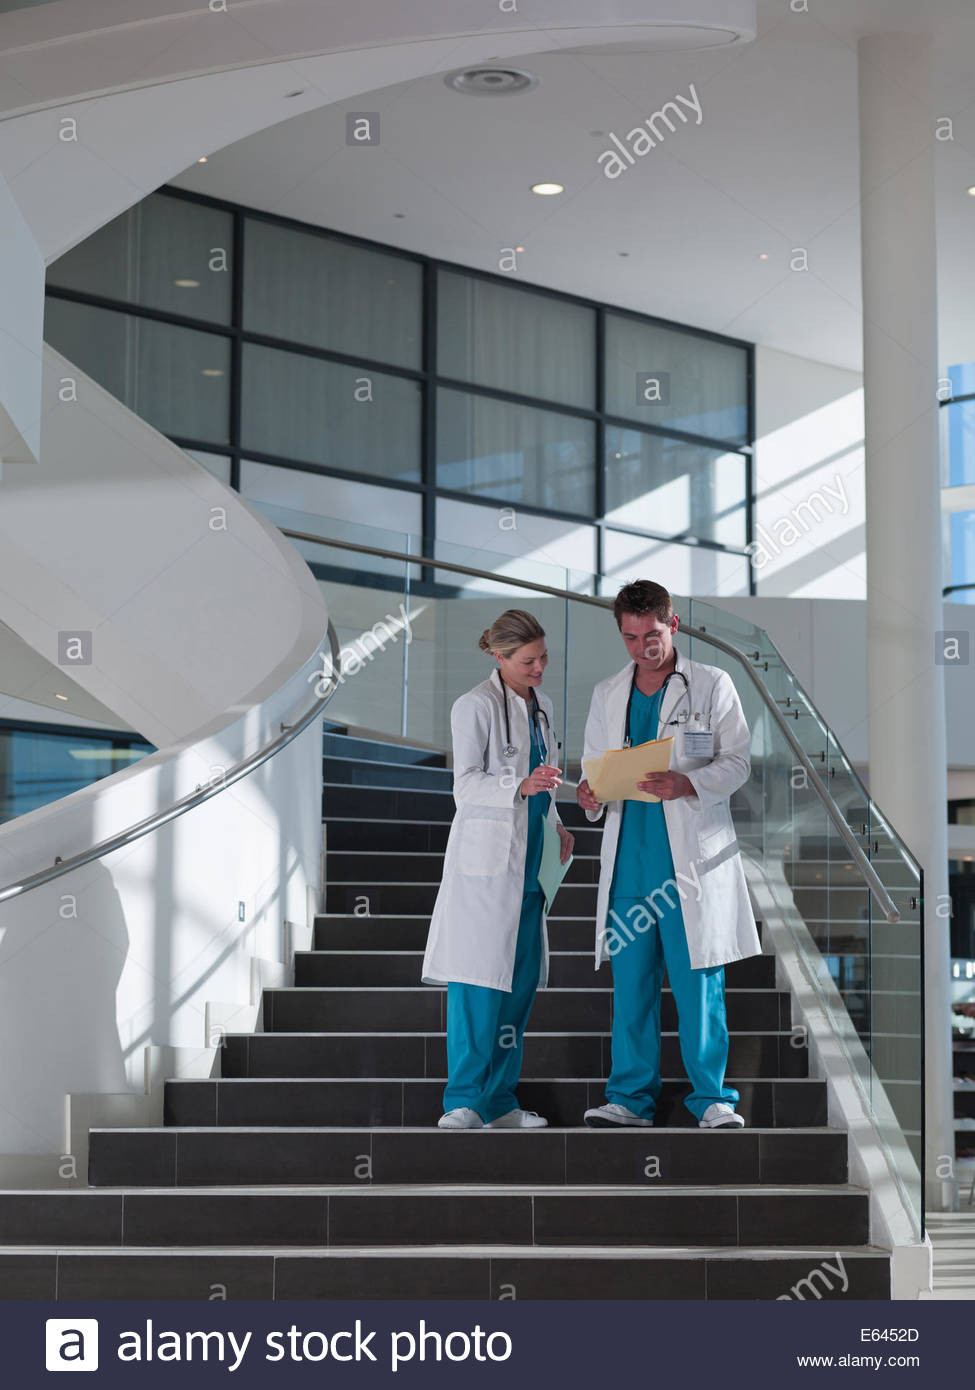 Doctors walking down staircase in hospital - Stock Image